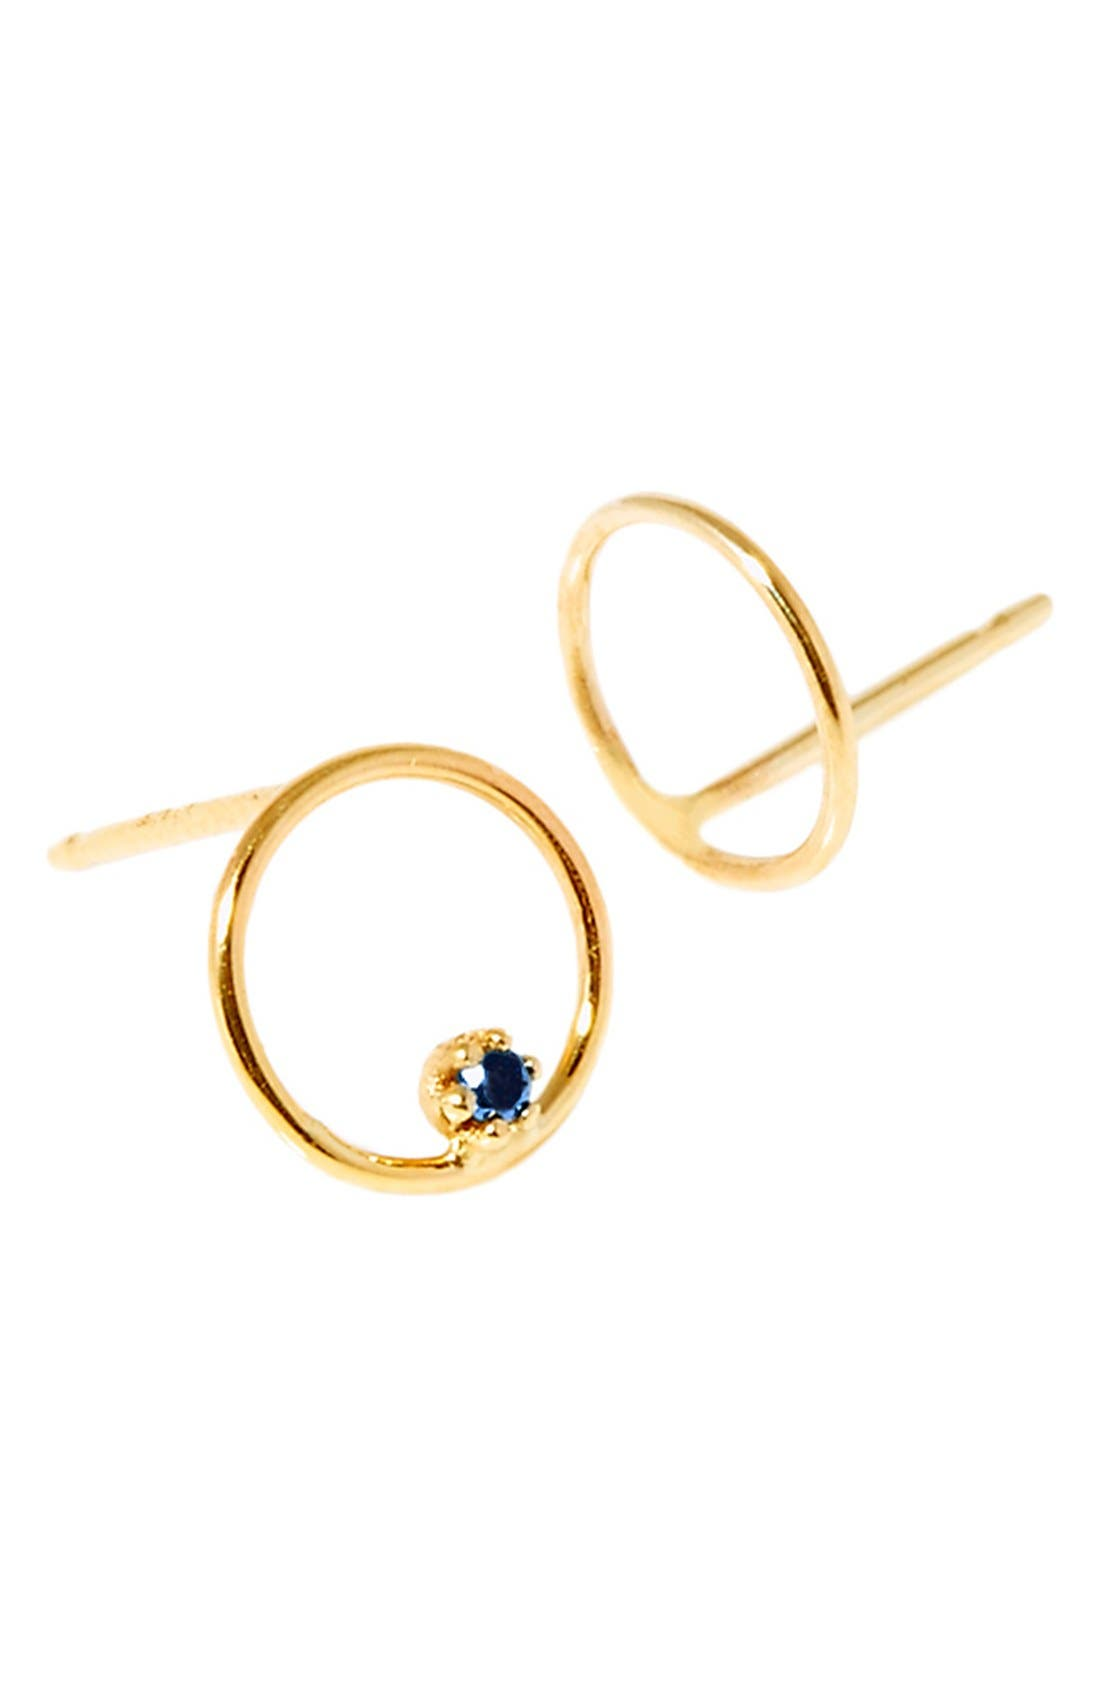 'Stone Bubble' Mismatched Gold & Sapphire Earrings,                         Main,                         color,